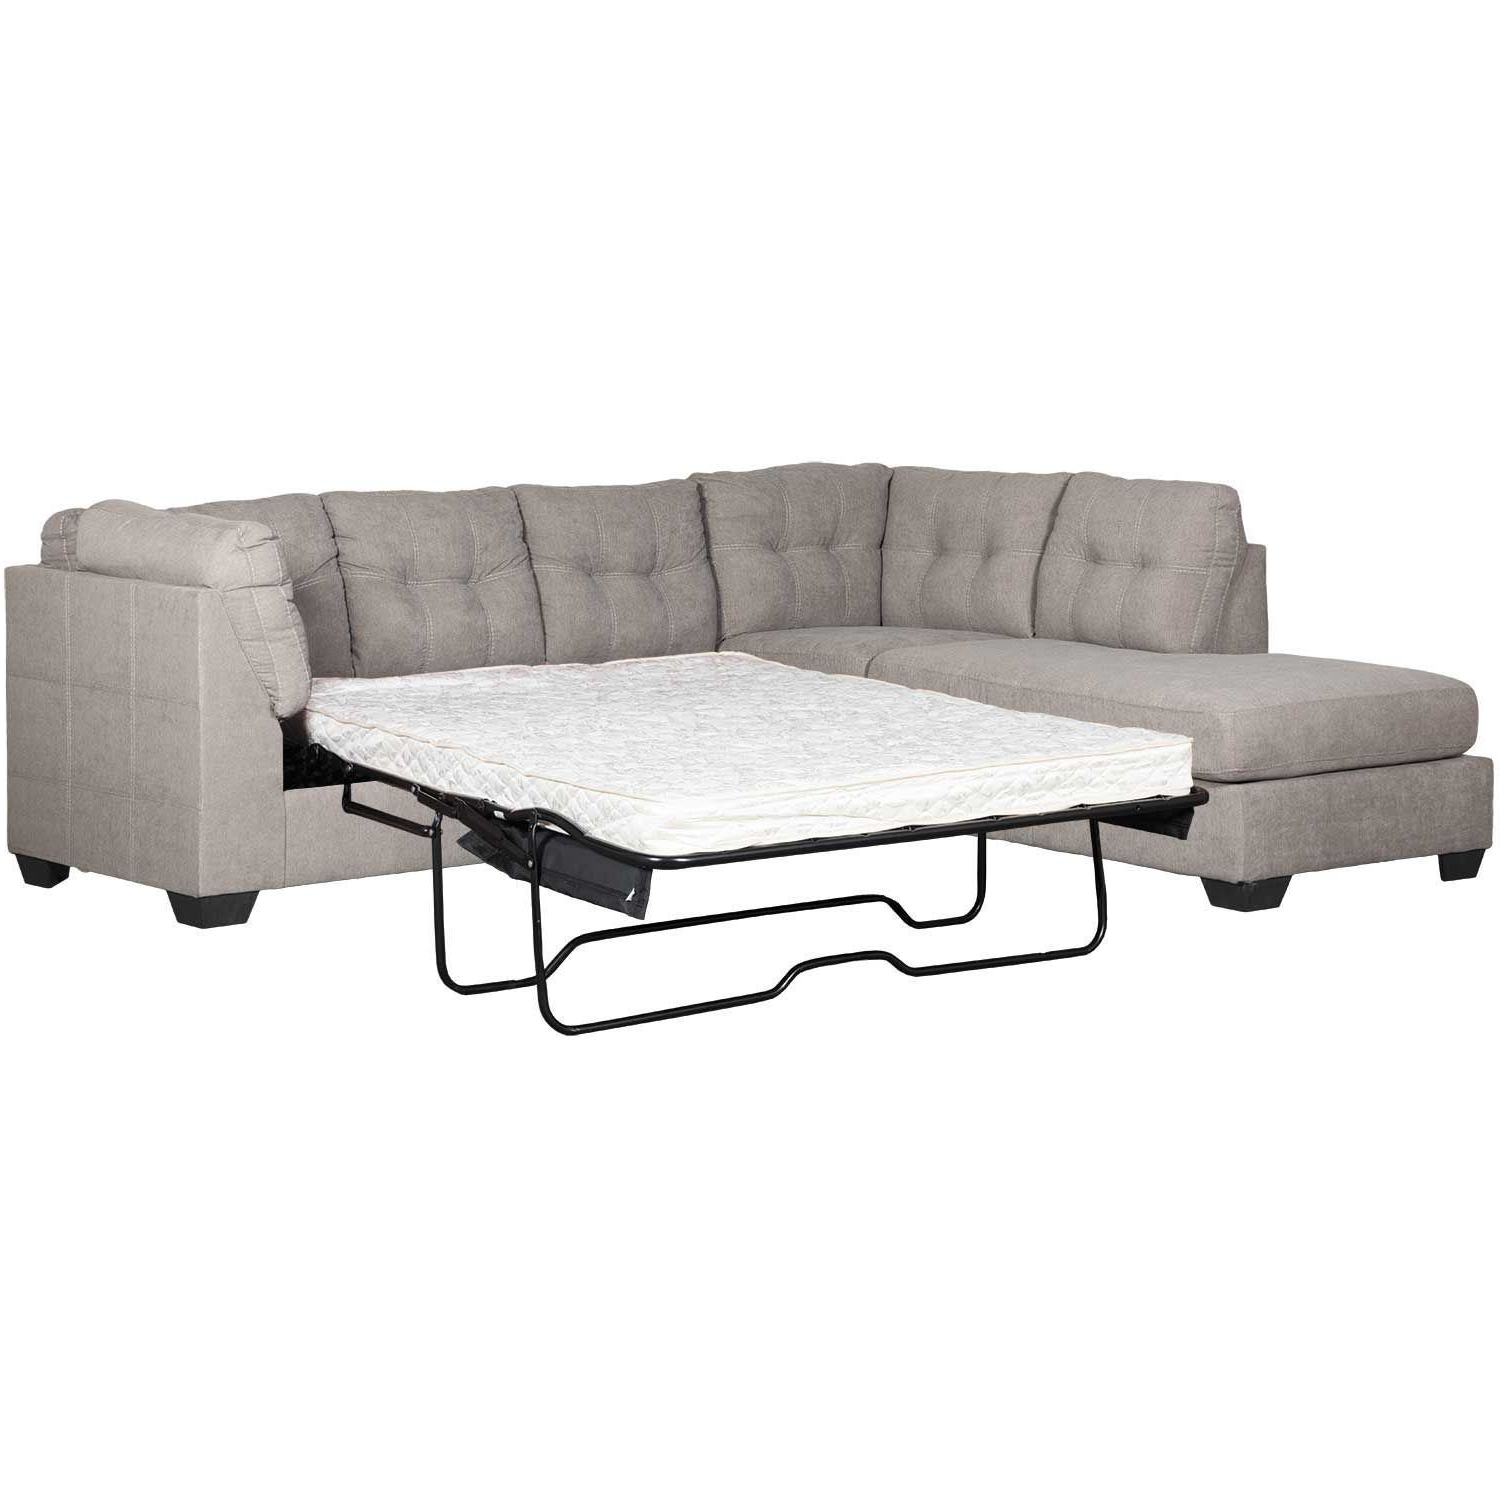 Mercury Right Arm Facing Innerspring Queen With Popular Aspen 2 Piece Sleeper Sectionals With Laf Chaise (View 15 of 20)